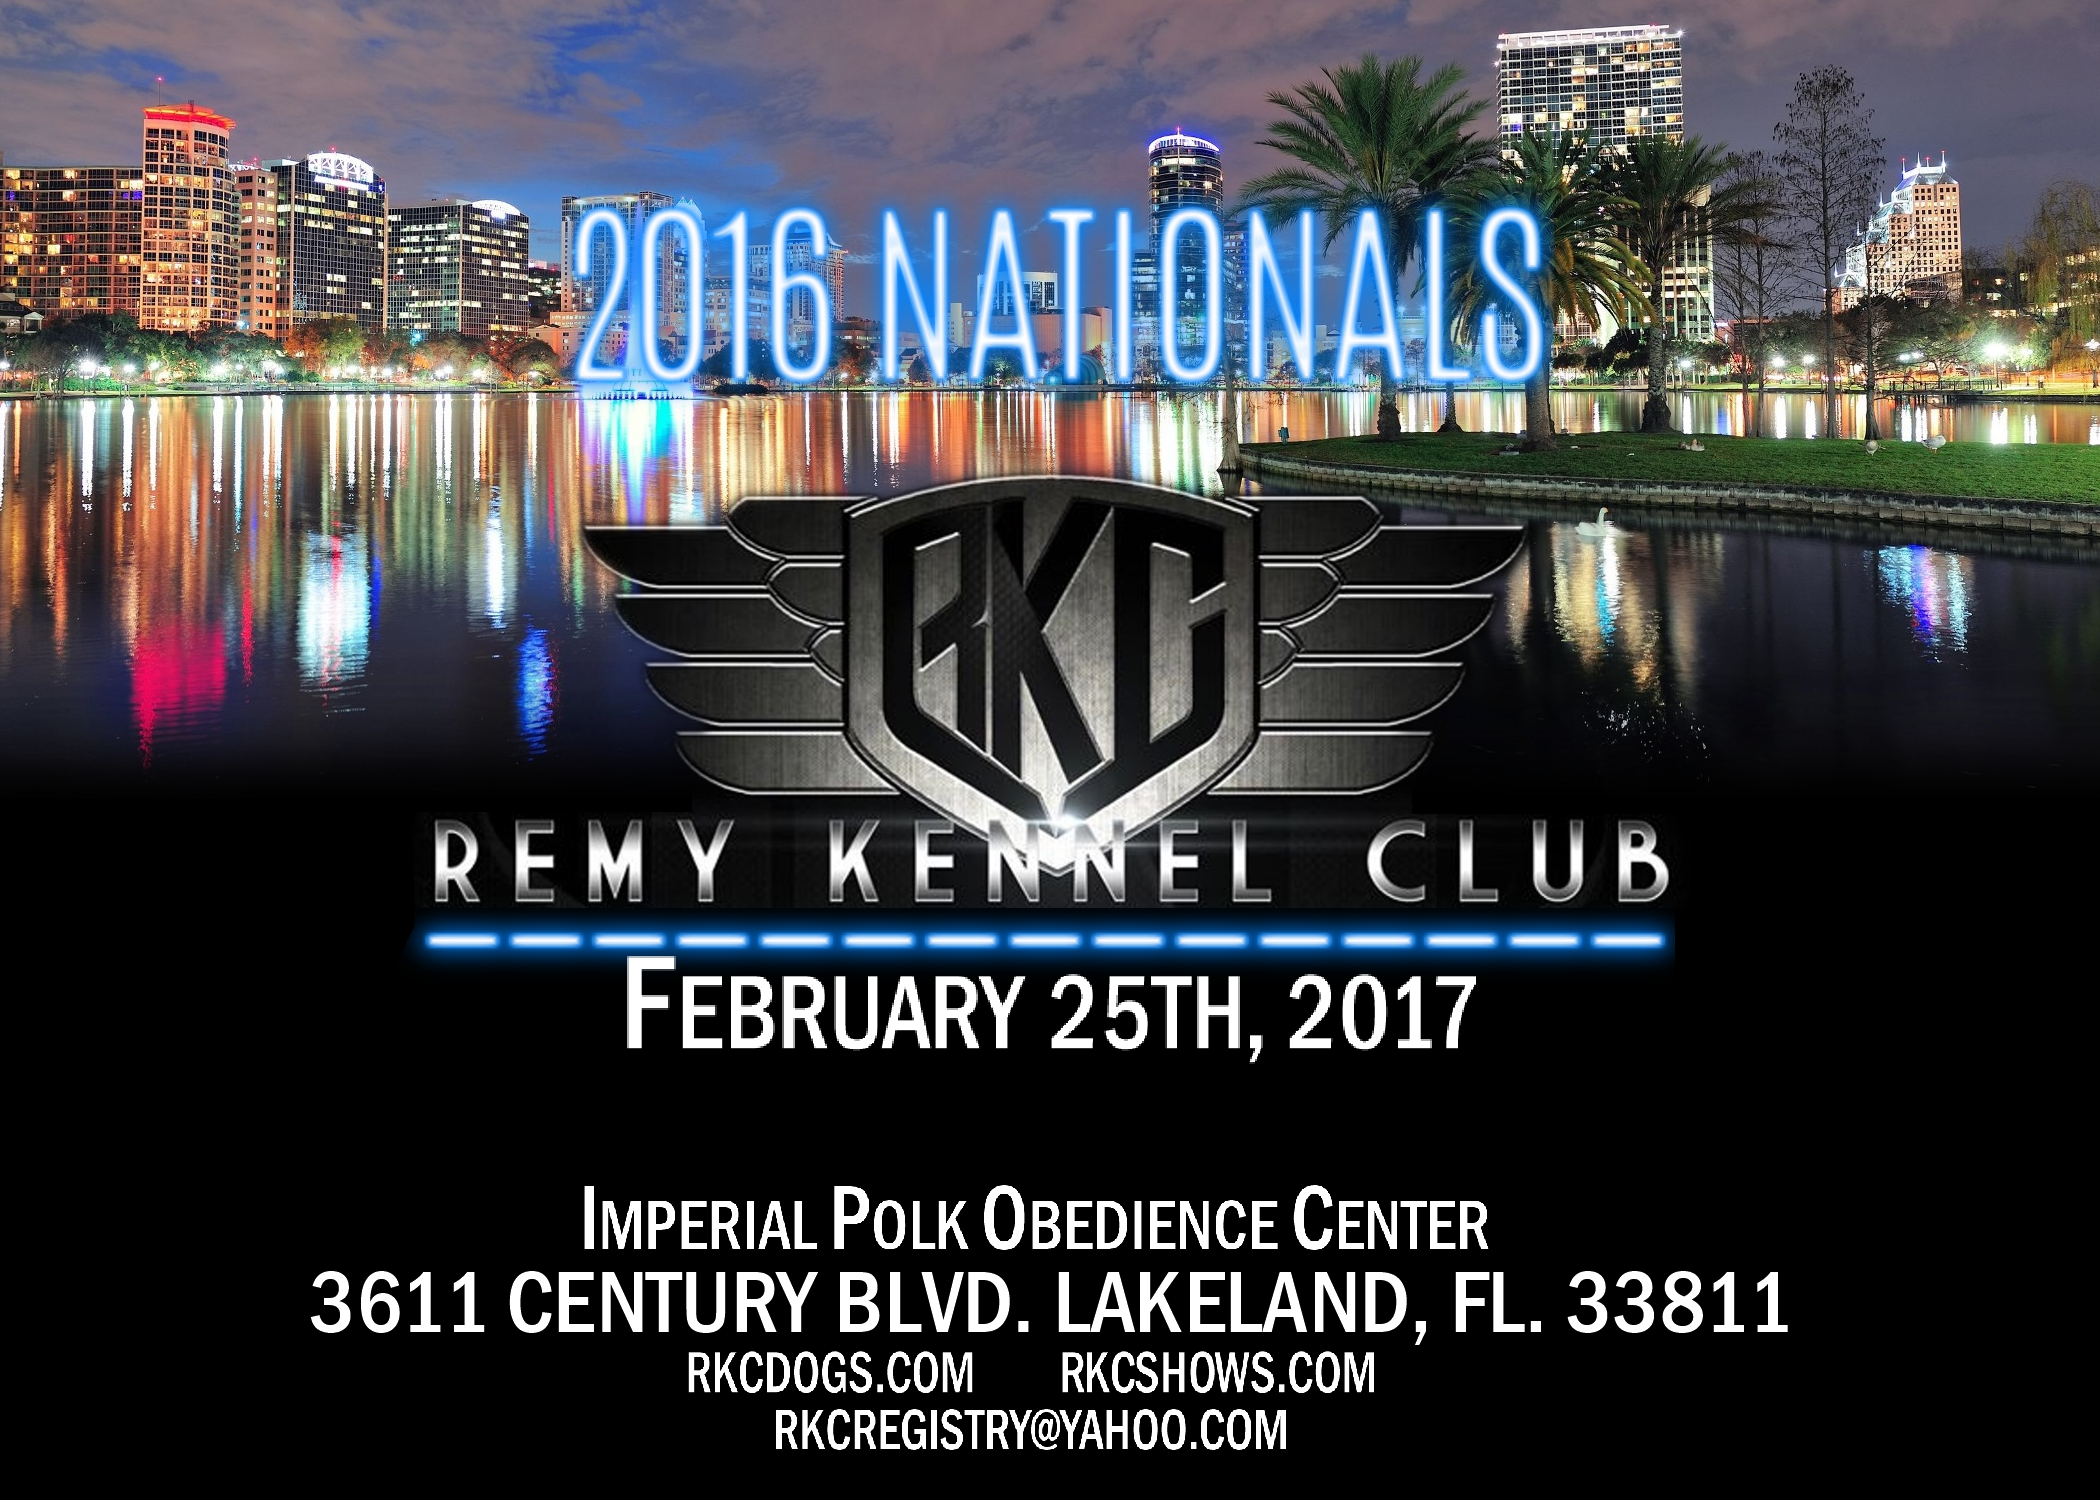 Remy Kennel Club Nationals 2016